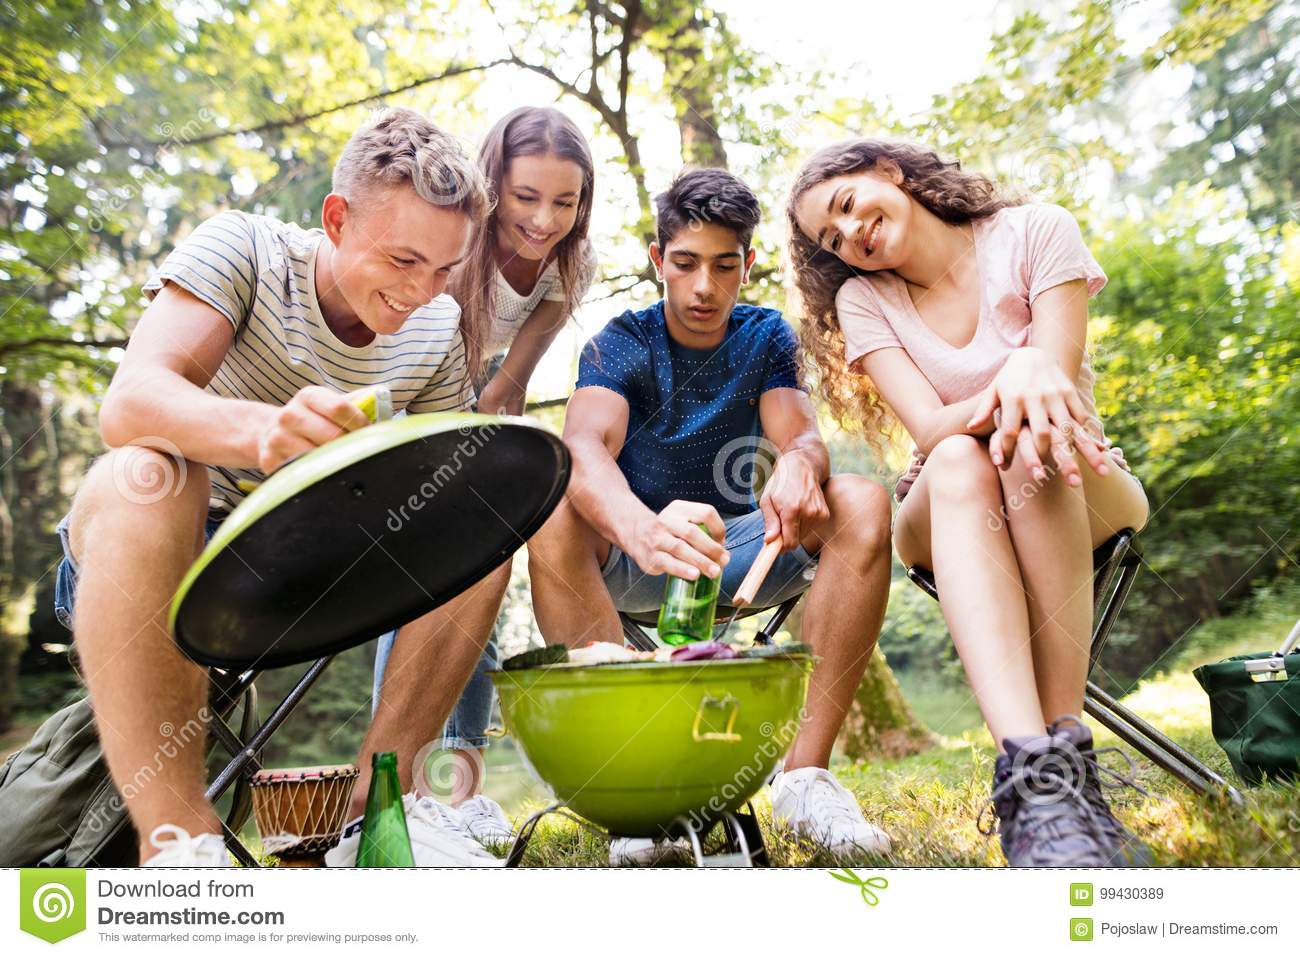 Teenagers camping, cooking meat on barbecue grill.